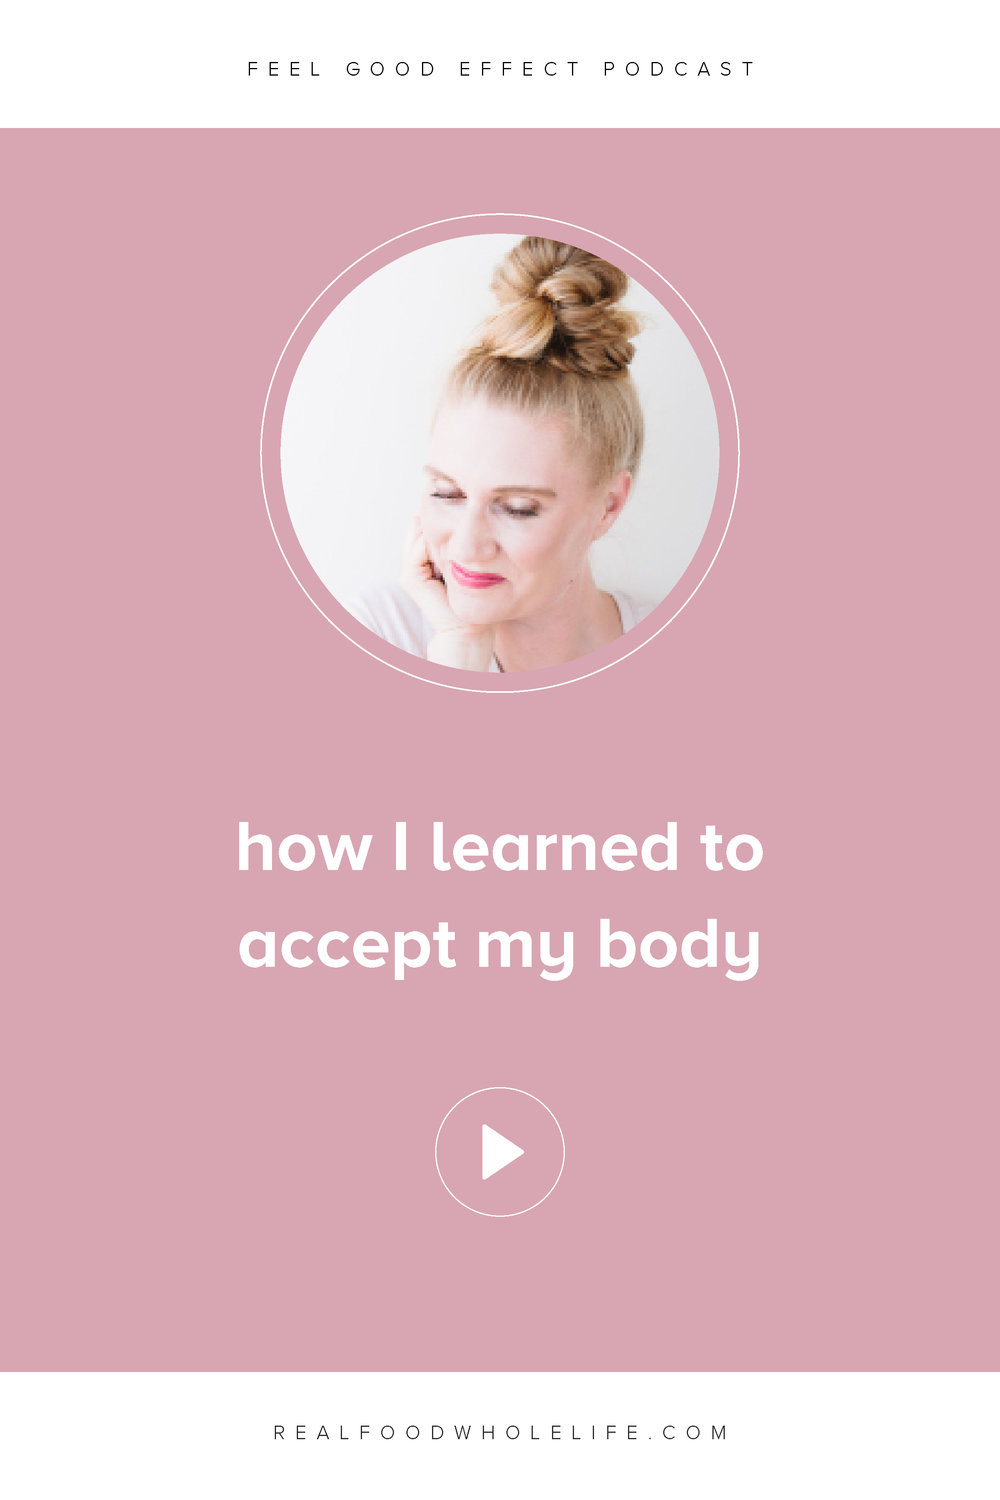 How I learned to accept my body, an episode from the Feel Good Effect podcast #feelgoodeffect #podcast #episode #selflove #bodylove #wellness